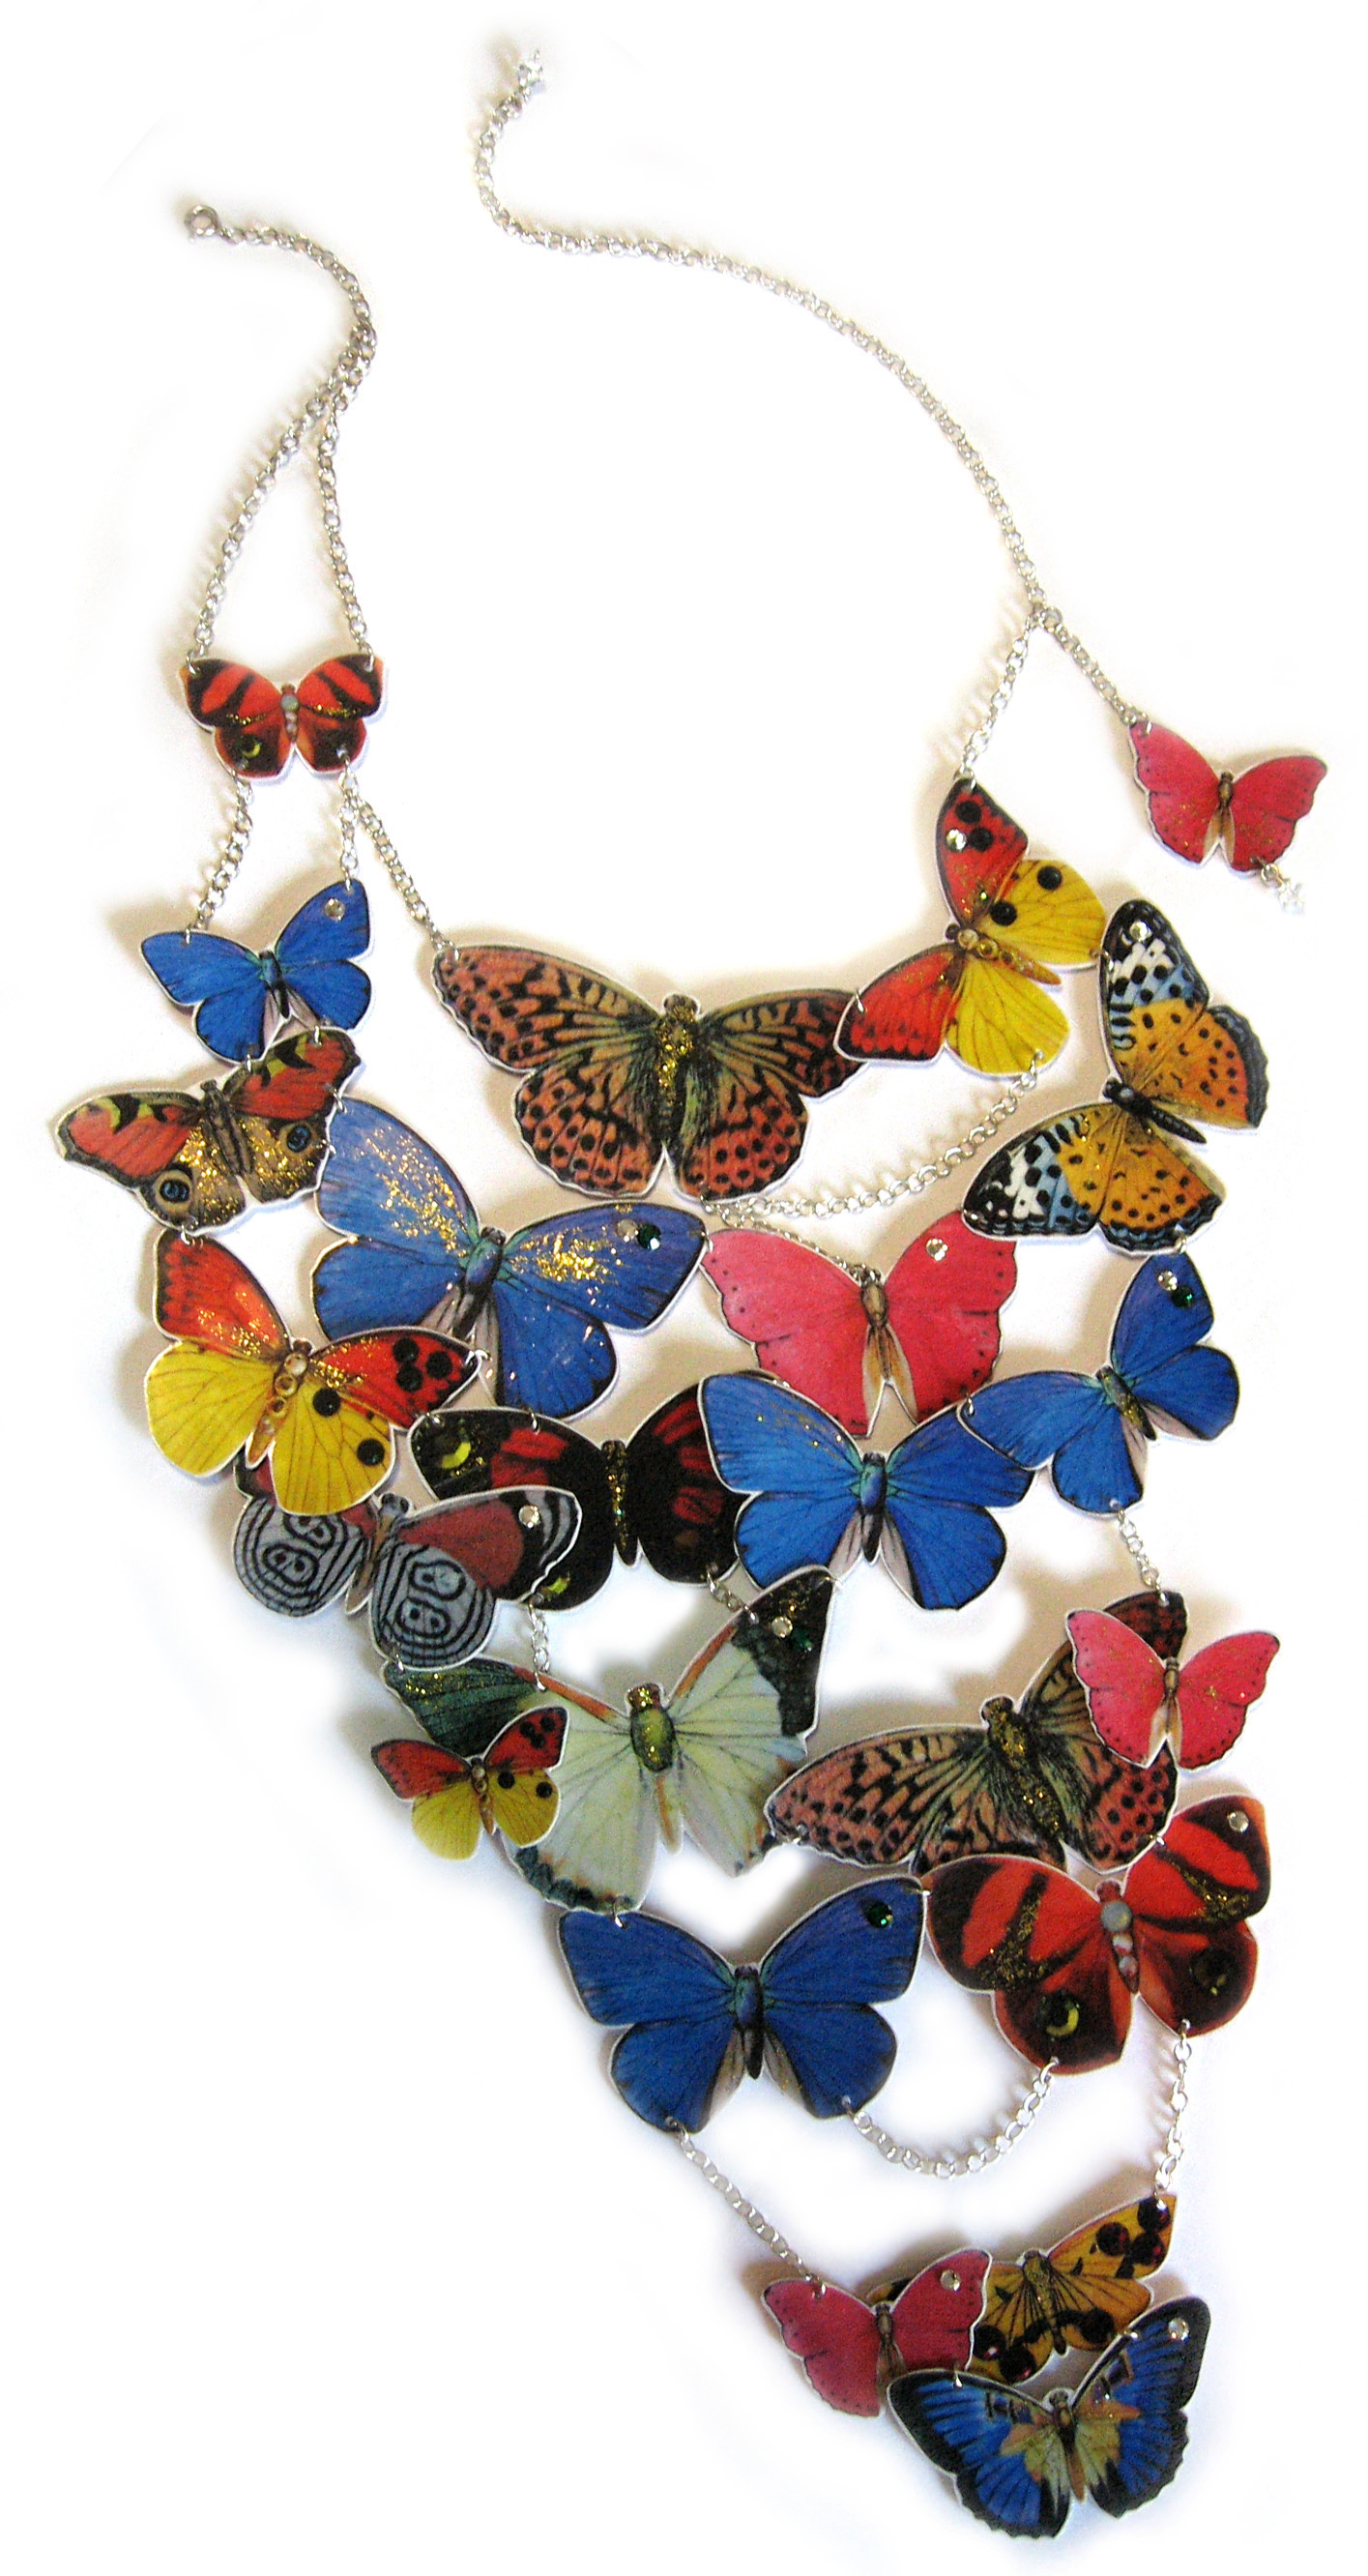 Jewelry Designer Nurit Spiegel Introduces Fun Fantastic